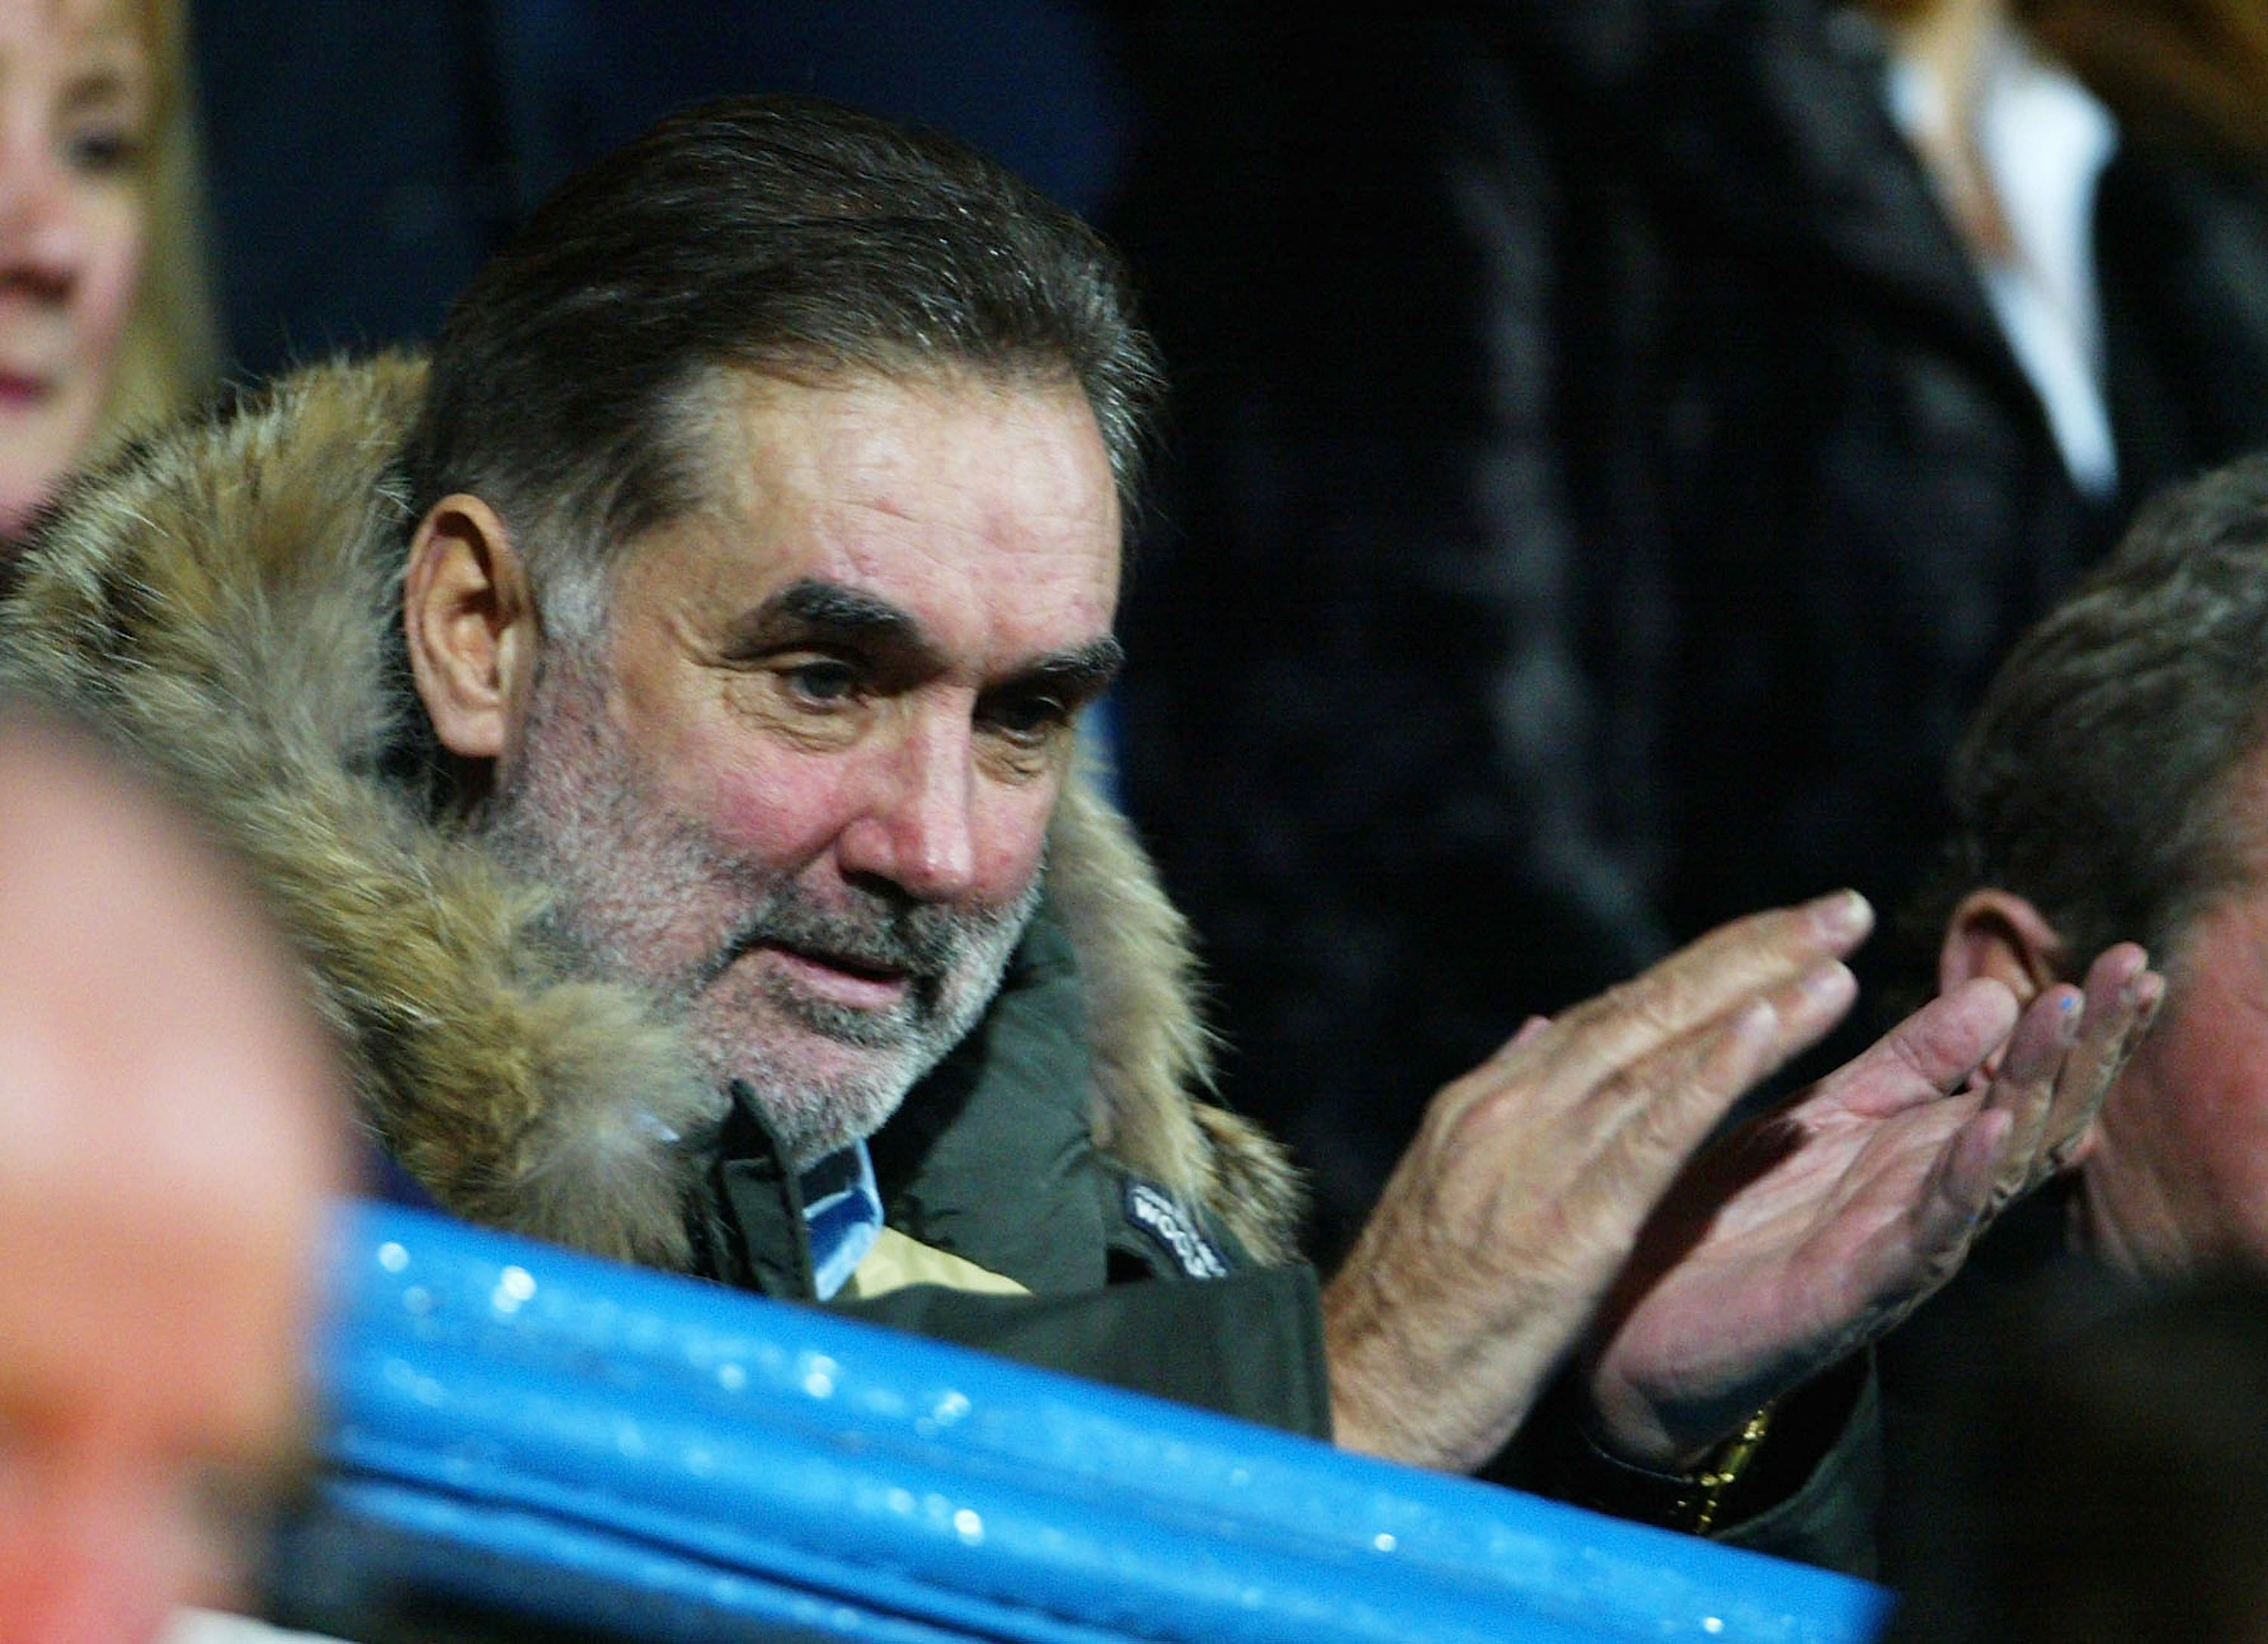 PORTSMOUTH, ENGLAND - FEBRUARY 11:  Ex-football player George Best watches the game during the FA Barclaycard Premiership match between Portsmouth and Chelsea at Fratton Park on February 11, 2004 in Portsmouth, England.  (Photo by Phil Cole/Getty Images)